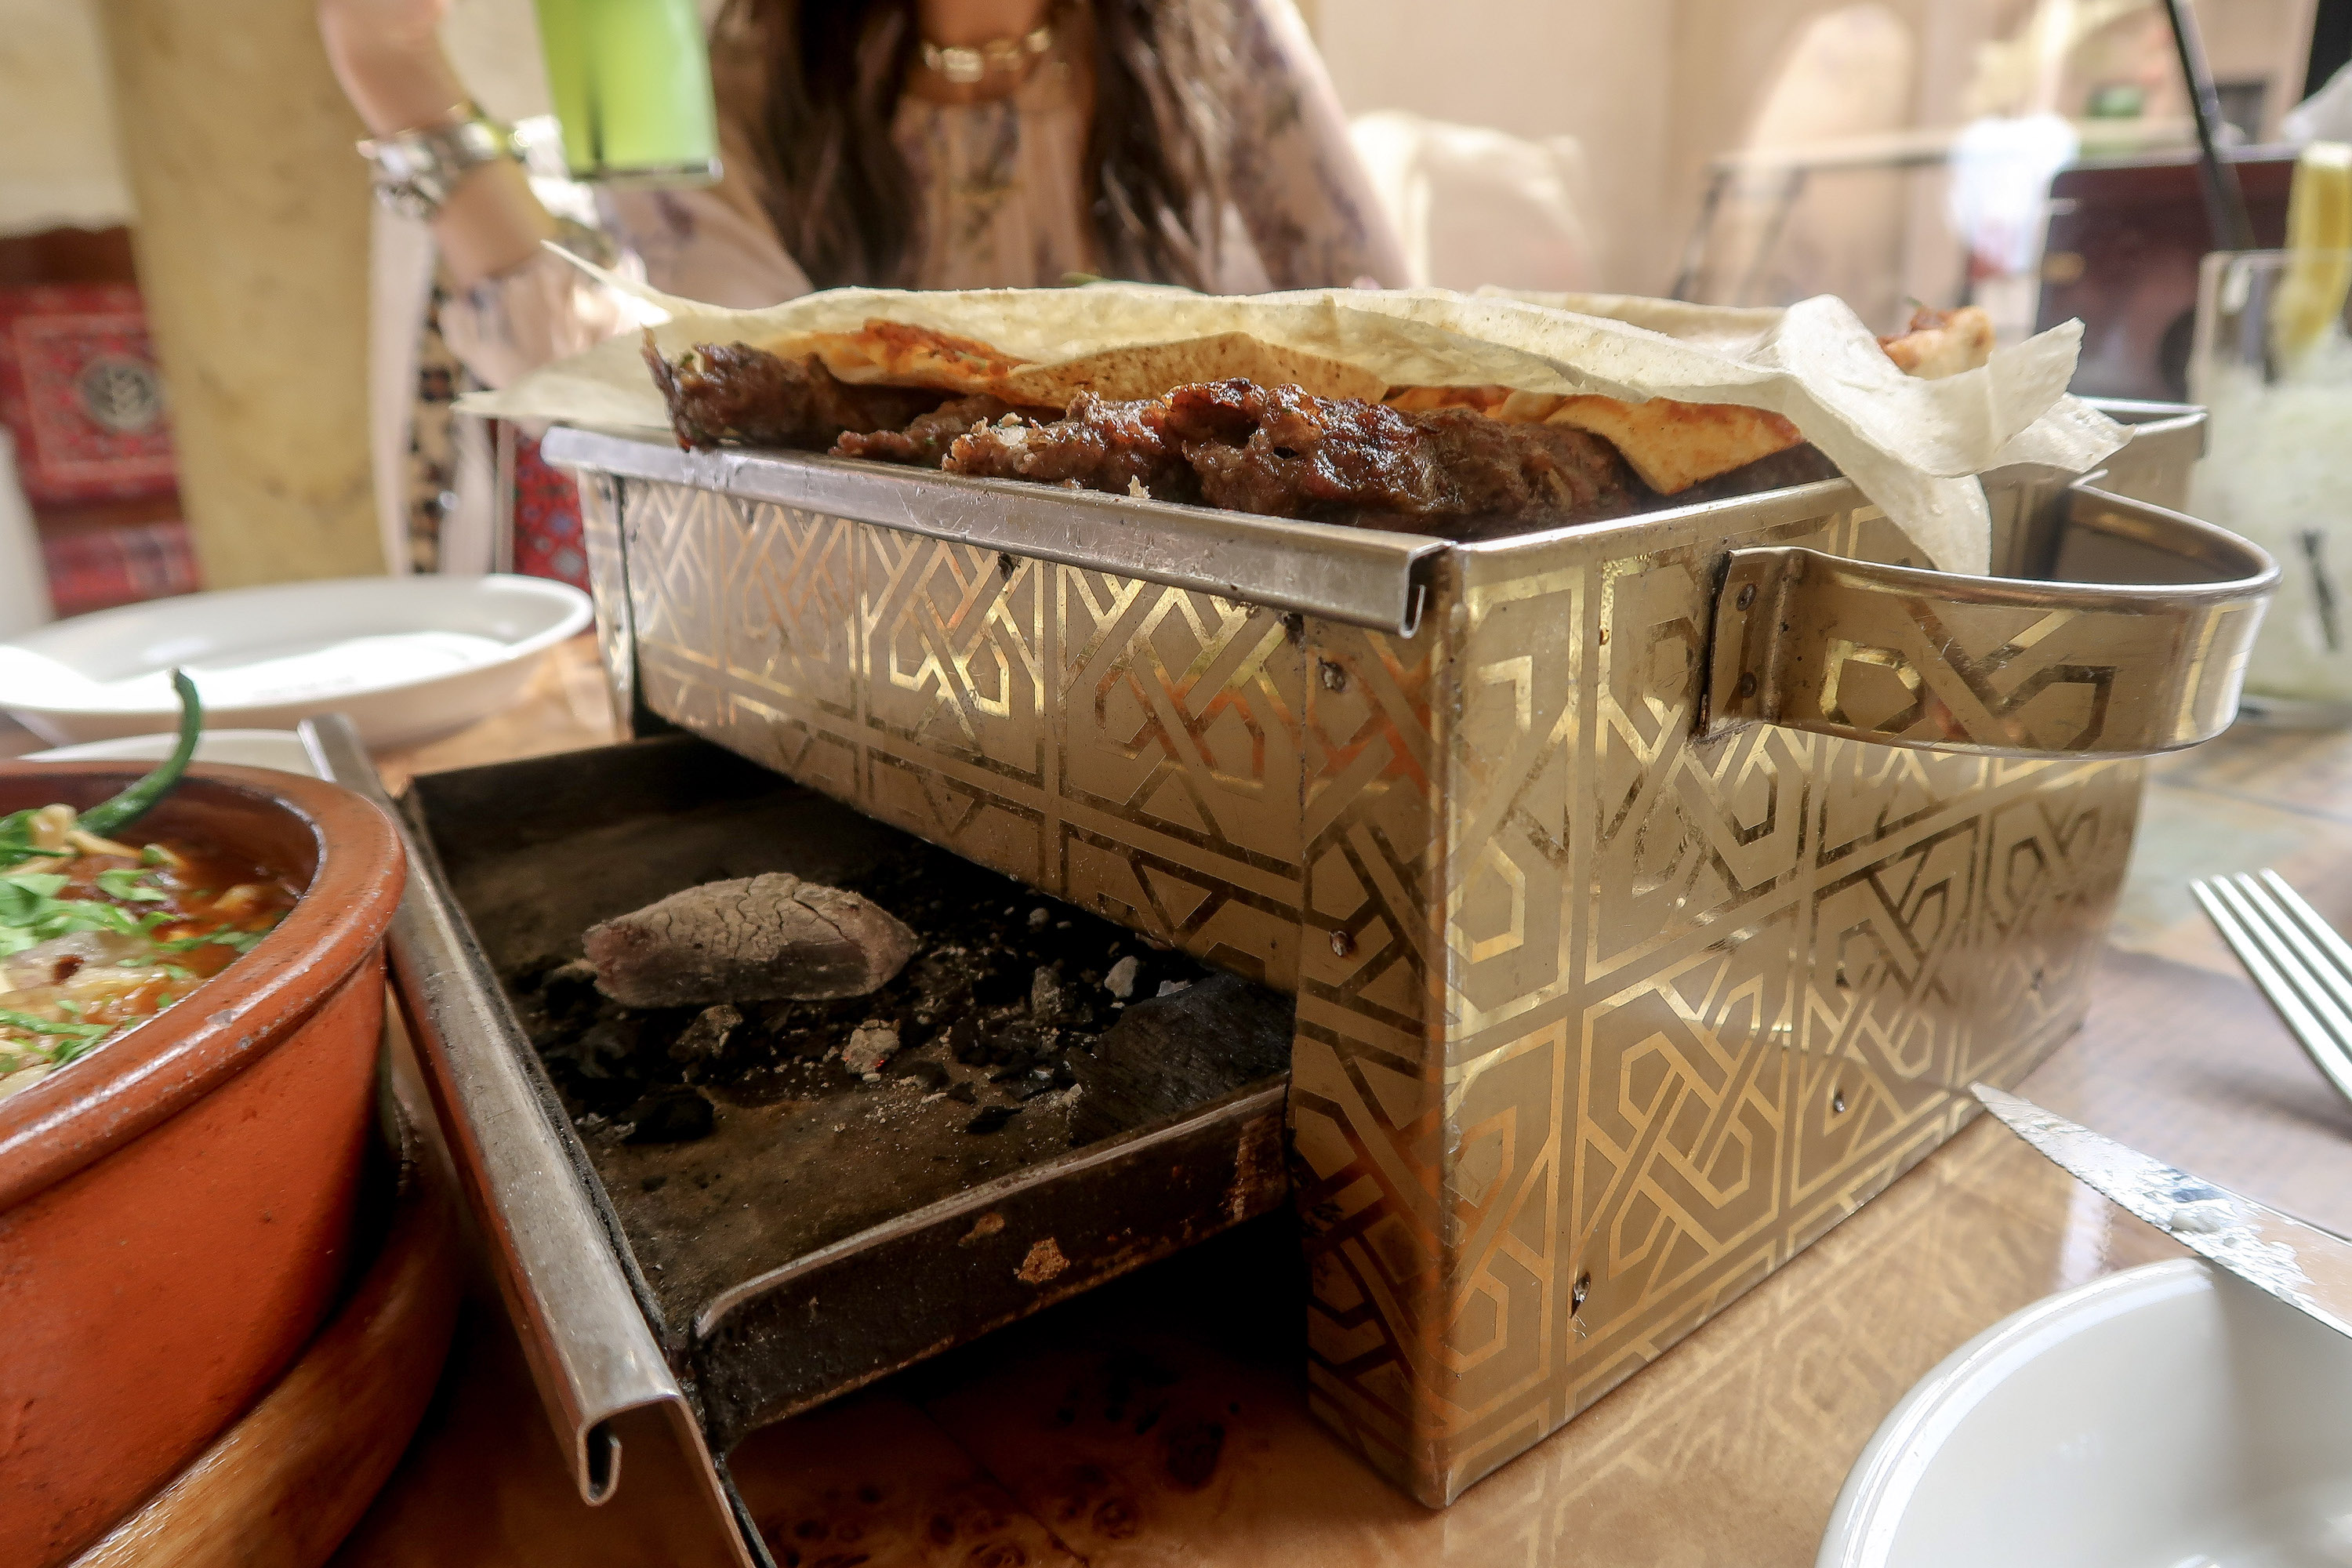 Lamb kebab, food in Qatar | Visit Qatar | Doha, the capital of Qatar is located in the Middle East and the World Cup 2022 location. Find out how I spent 4 days on my visit to Qatar | Travel Guide & Tips | Elle Blonde Luxury Lifestyle Destination Blog